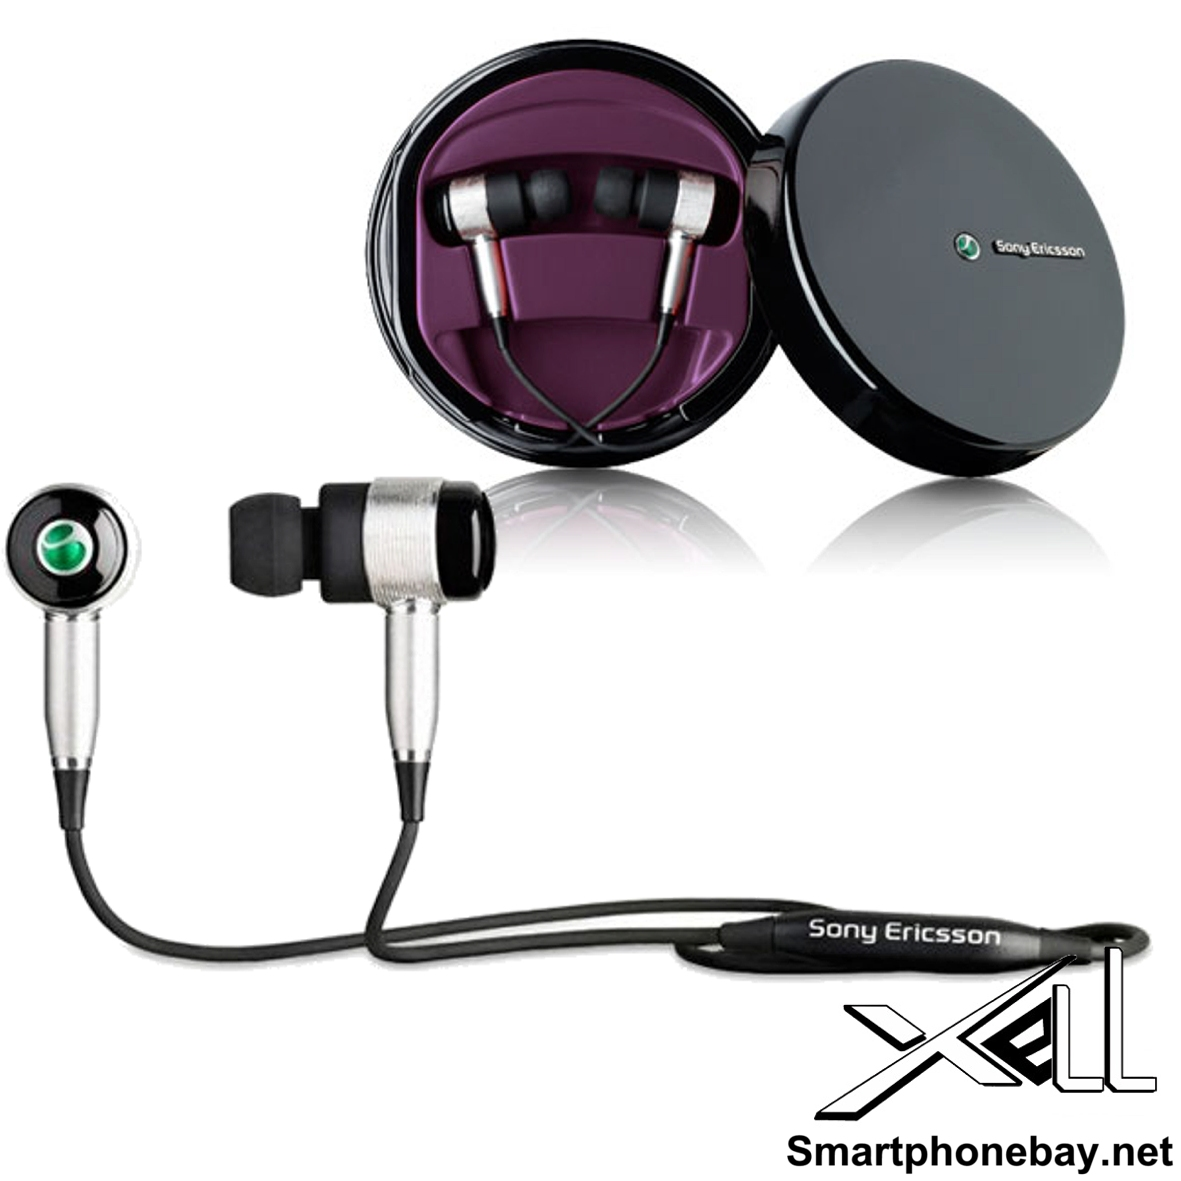 ... Release: Original Sony Ericsson bluetooth headset is now listed